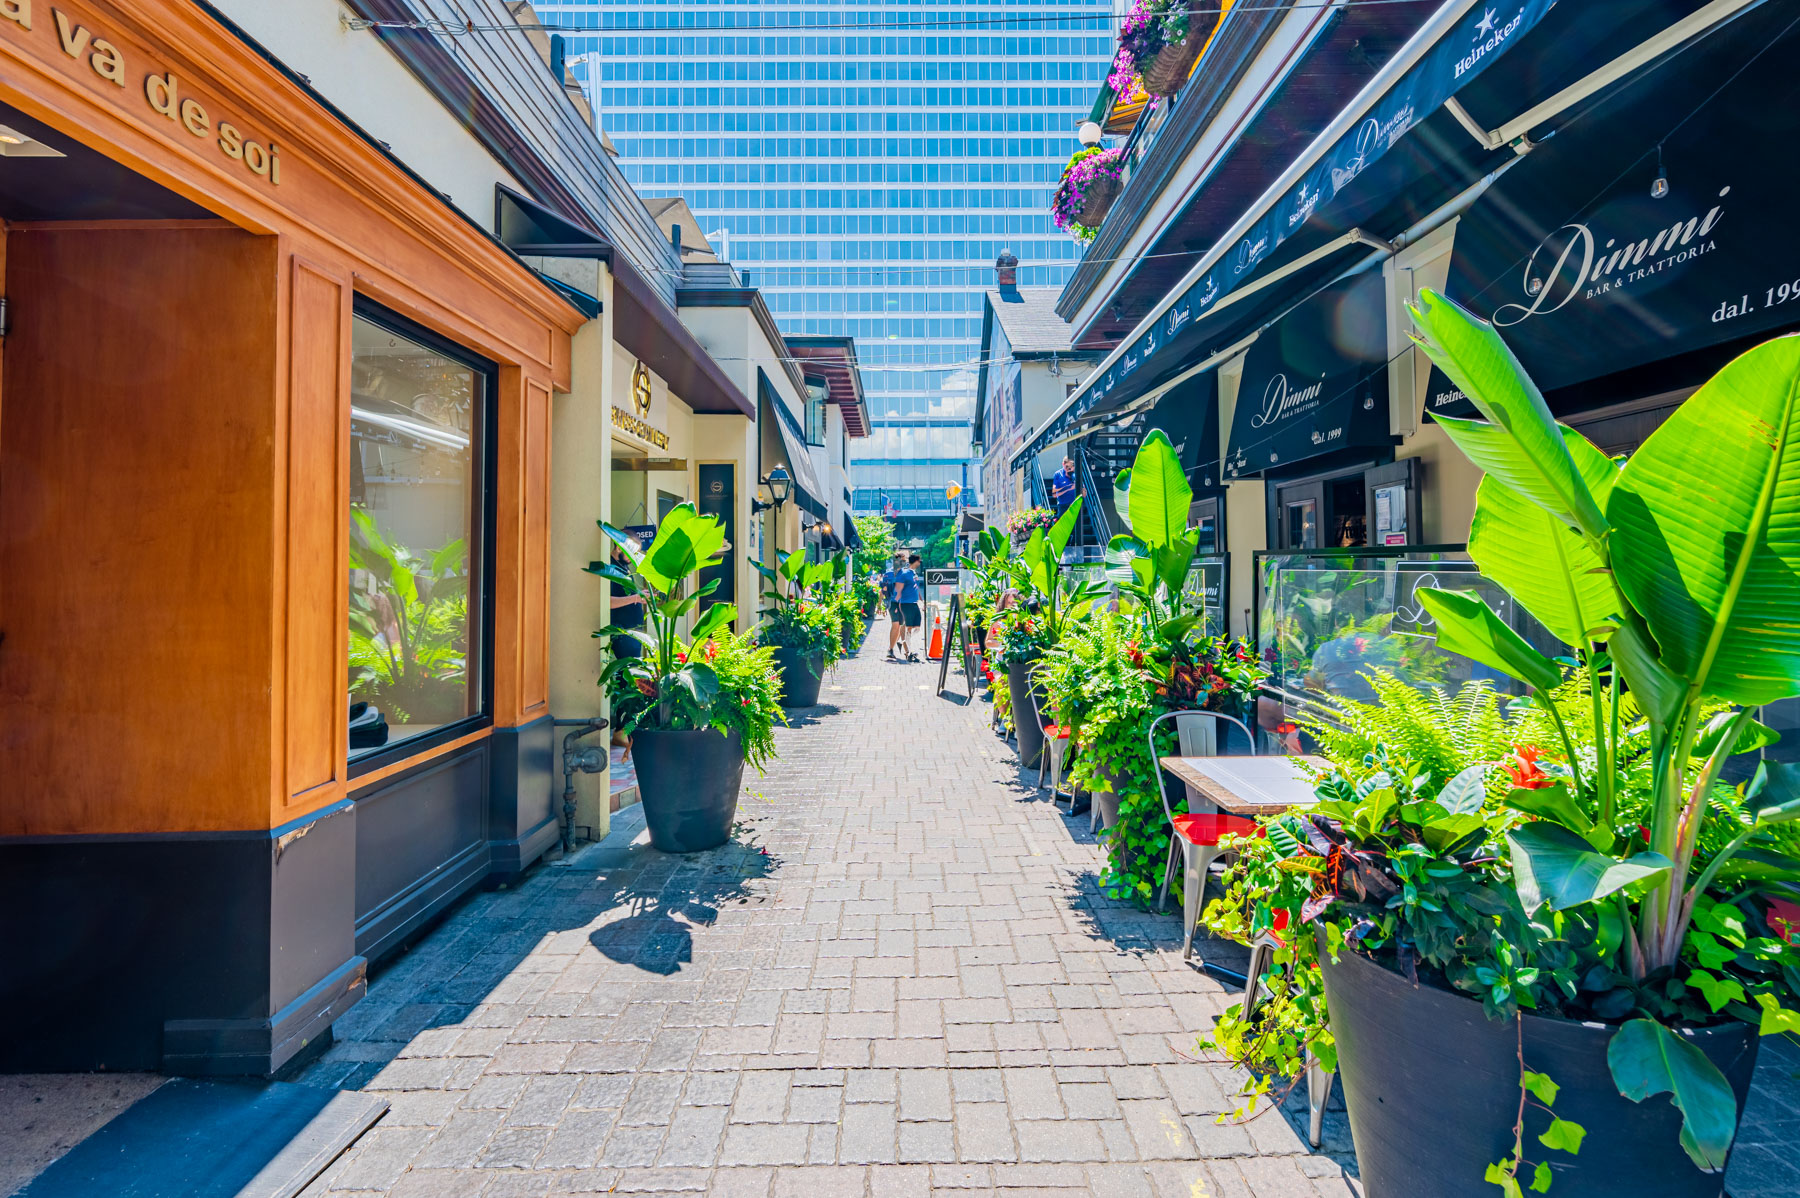 Narrow lane with potted plants and Dimmi Bar & Trattoria restaurant, Yorkville Toronto.